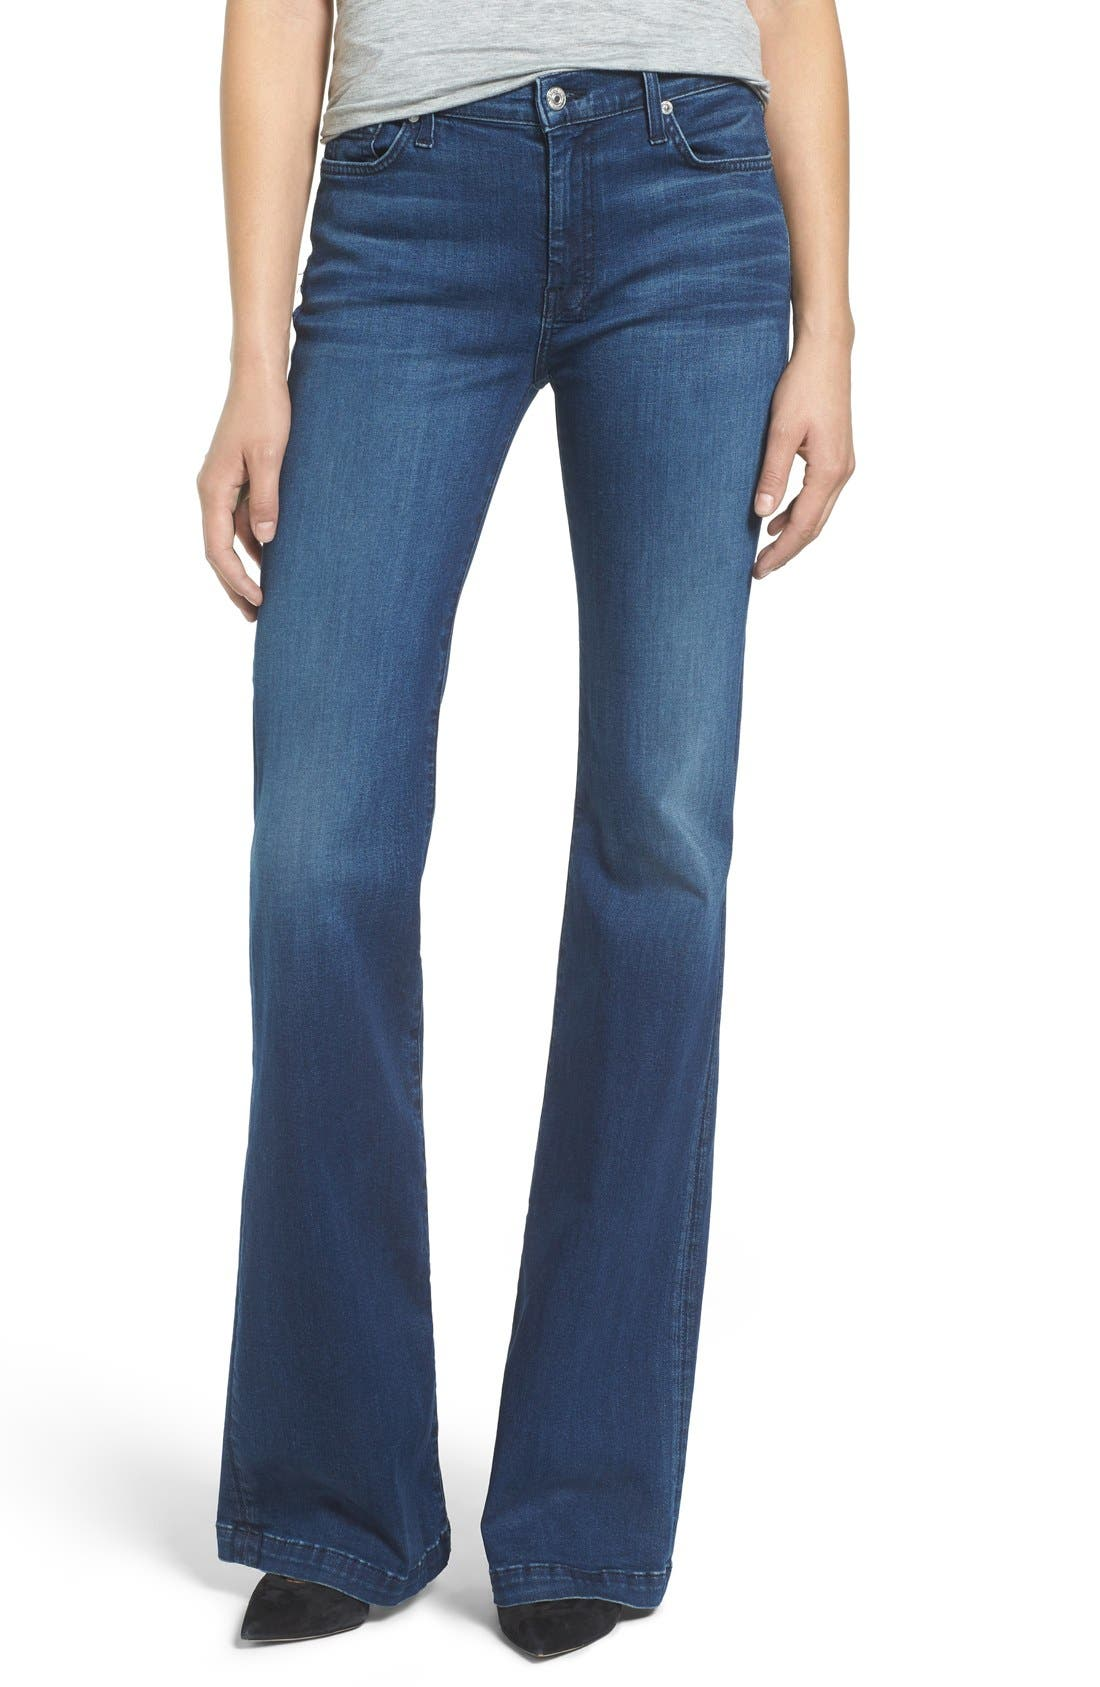 Alternate Image 1 Selected - 7 For All Mankind Tailorless Dojo Flare Jeans (Slim Illusion Luxe Luminous)